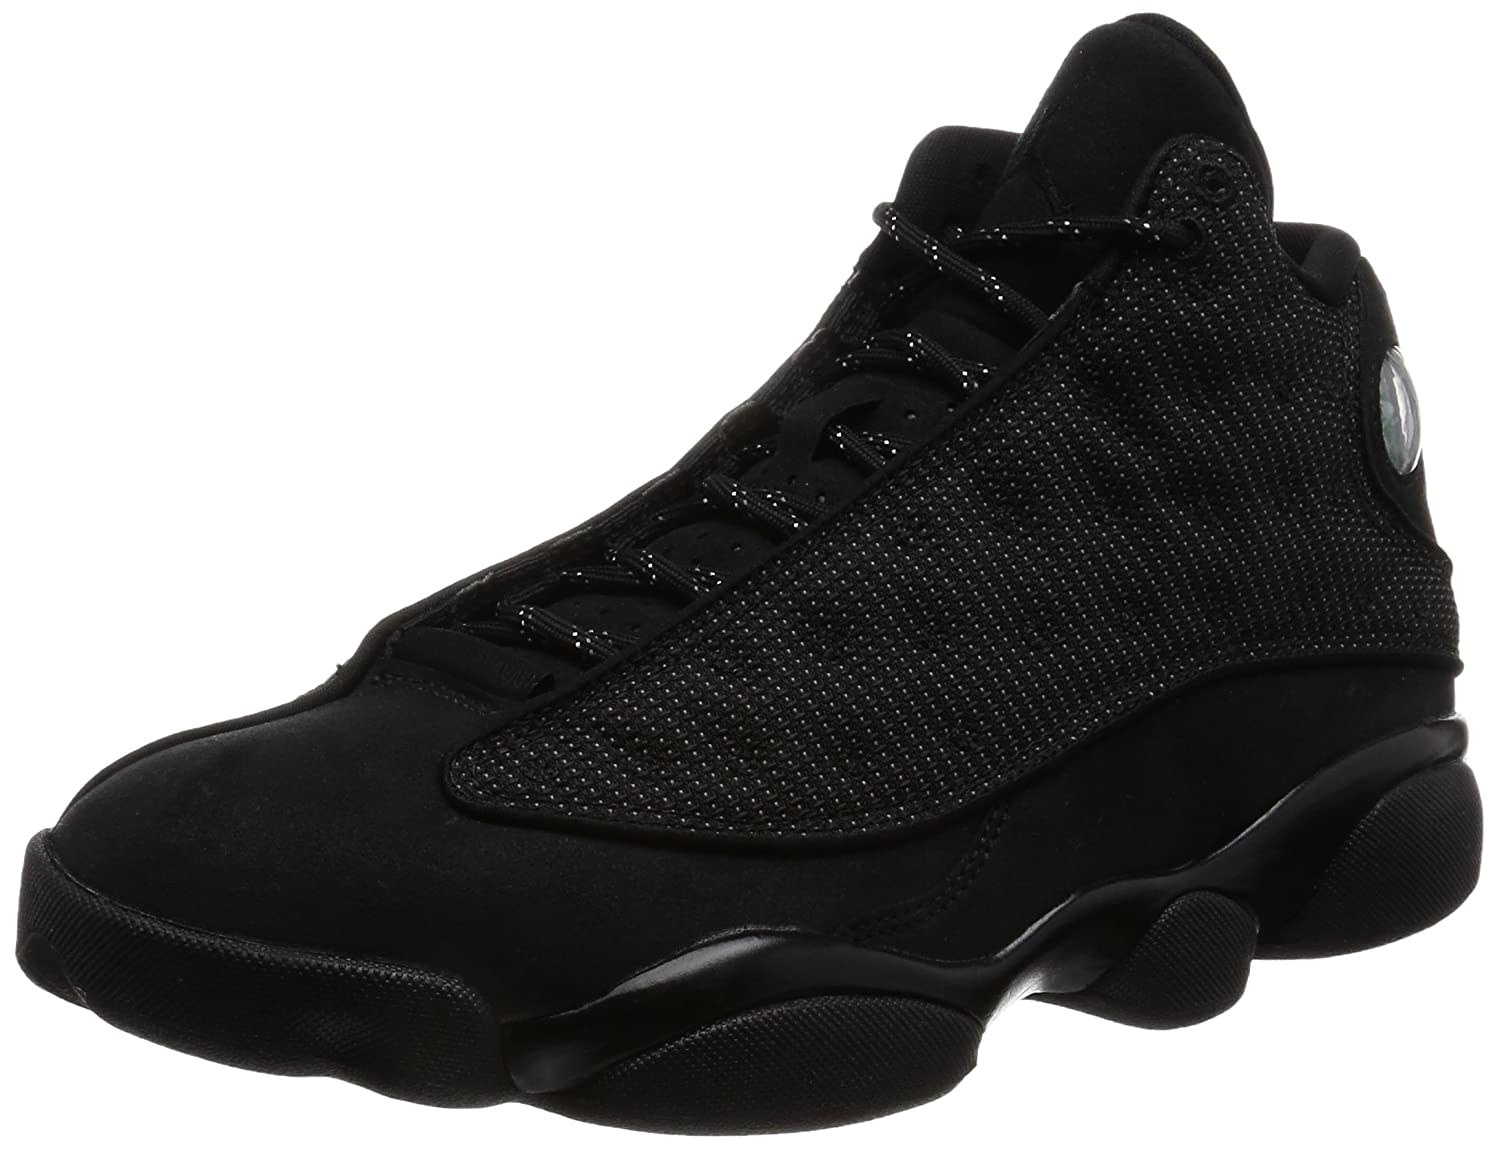 Air Jordan 13 Retro - 414571 011 B01NBX9CBL 14 M US|BLACK/BLACK-ANTHRACITE